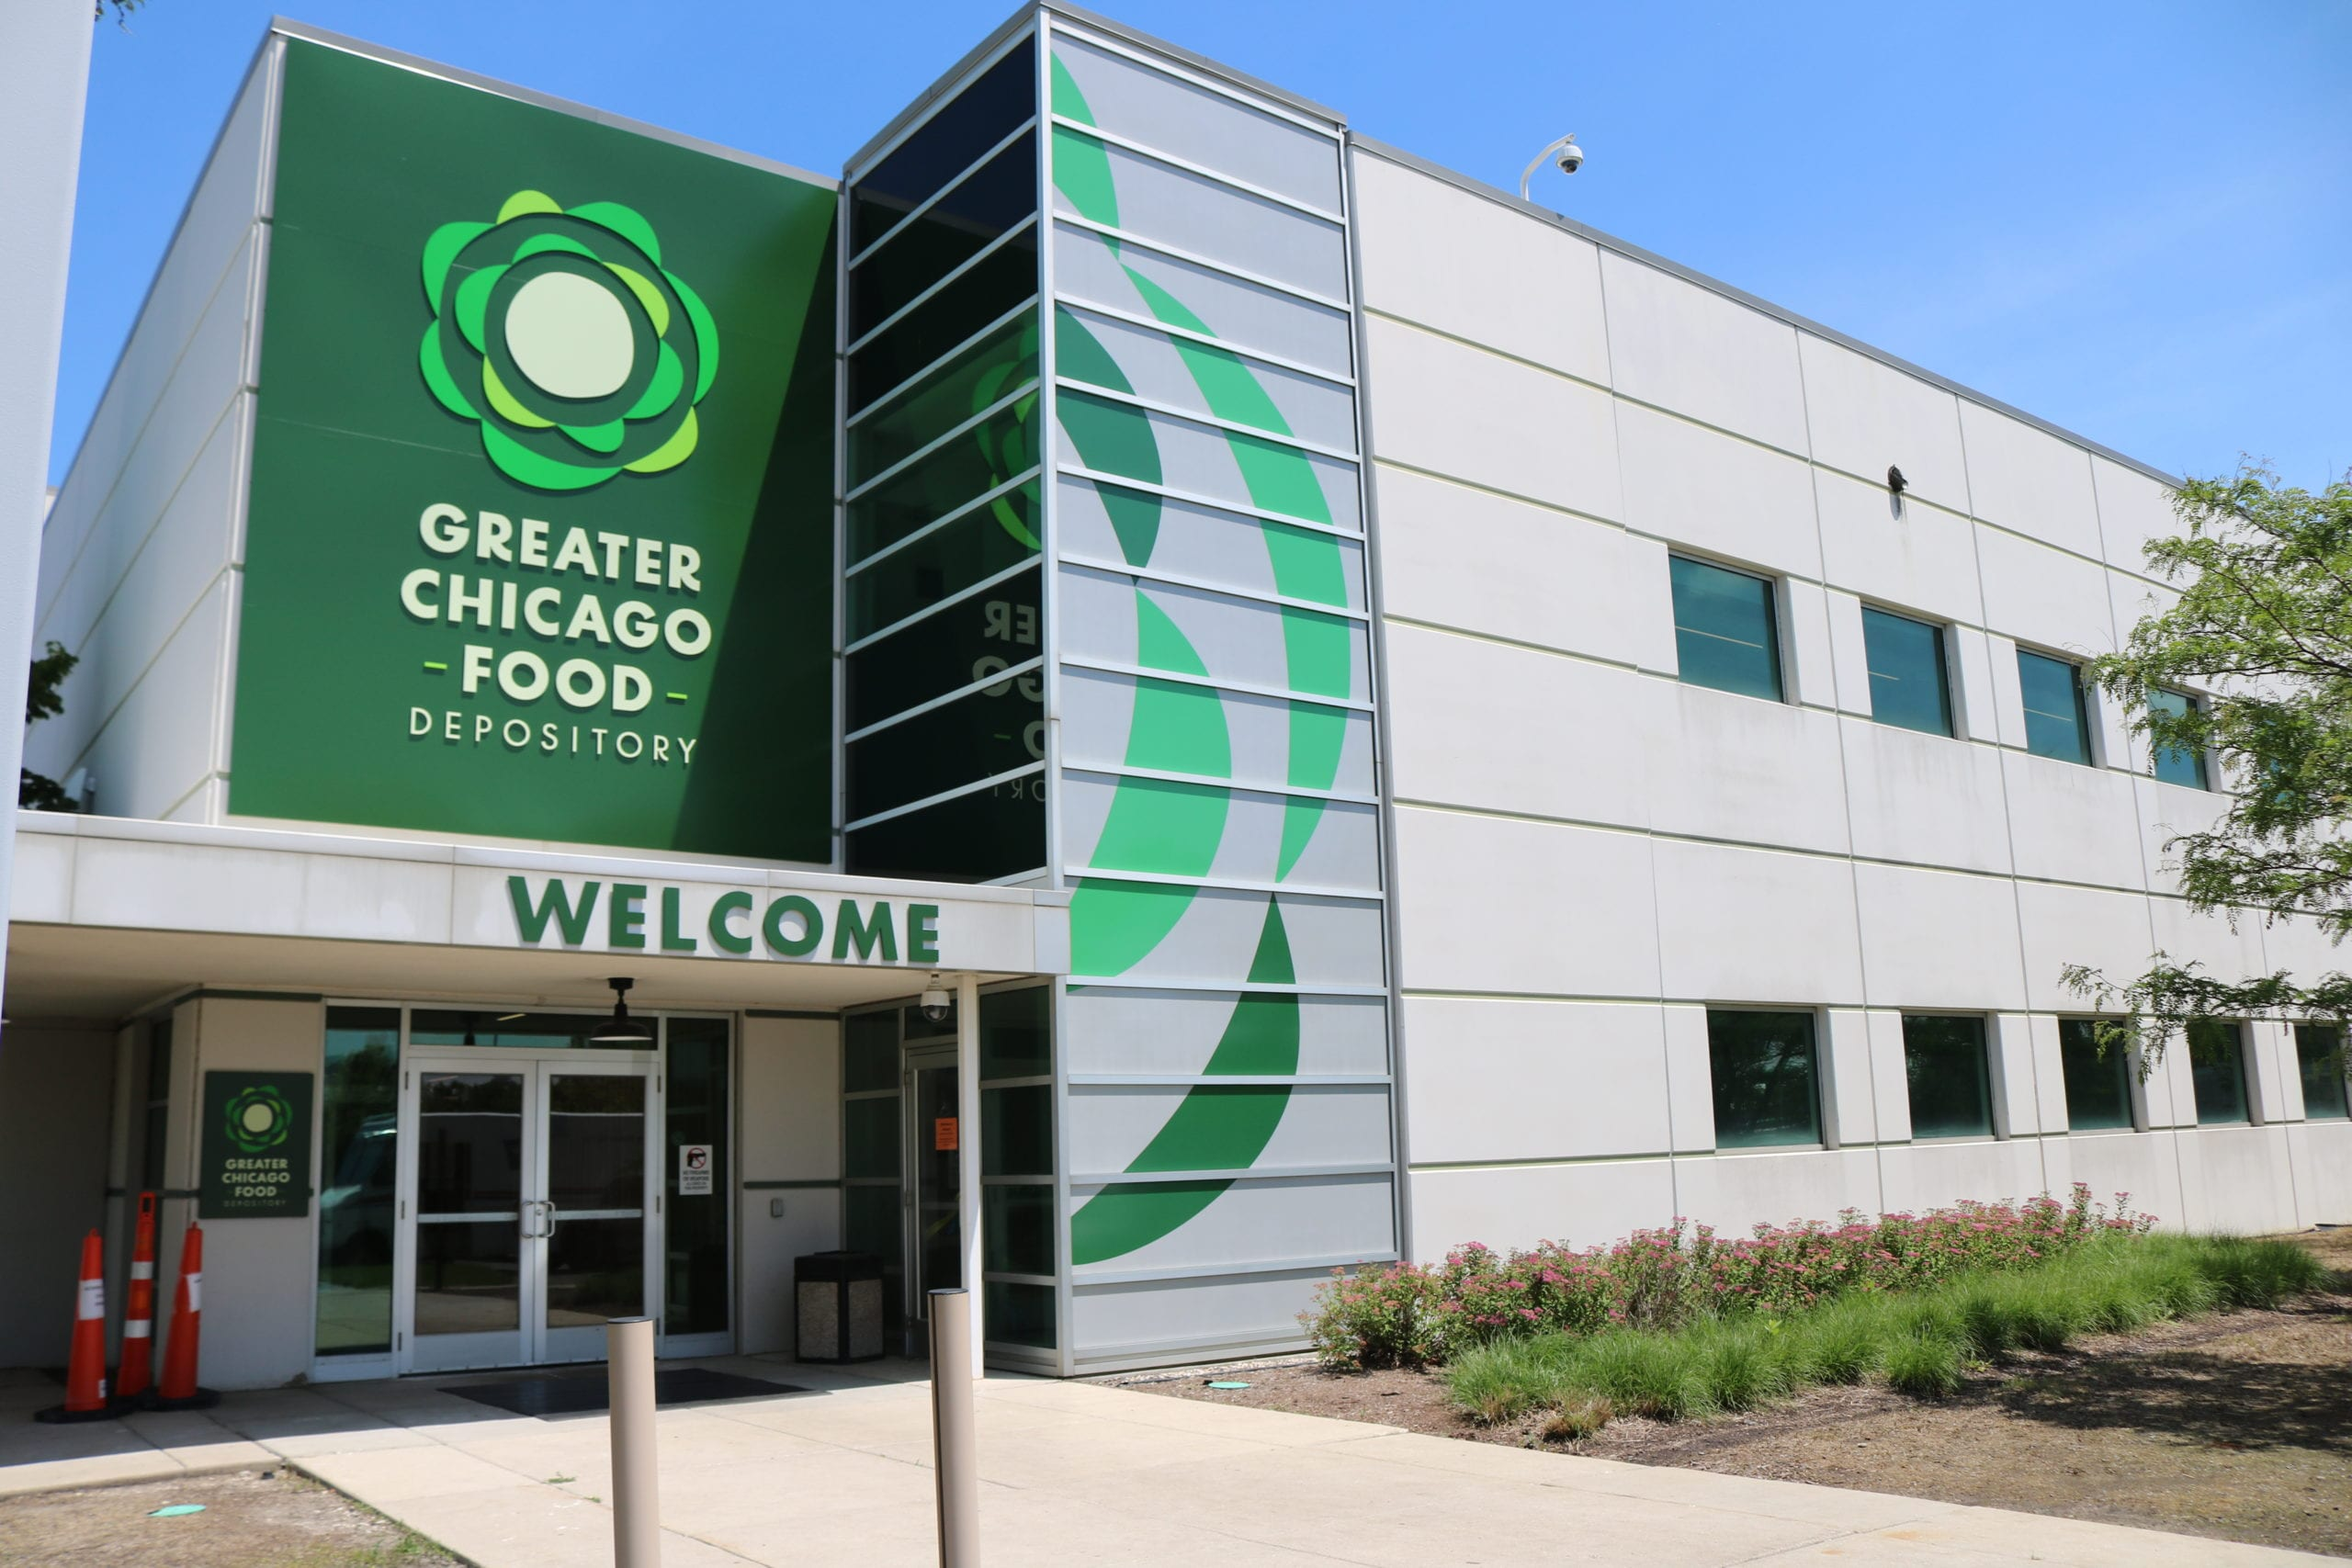 Chicago Food Depository